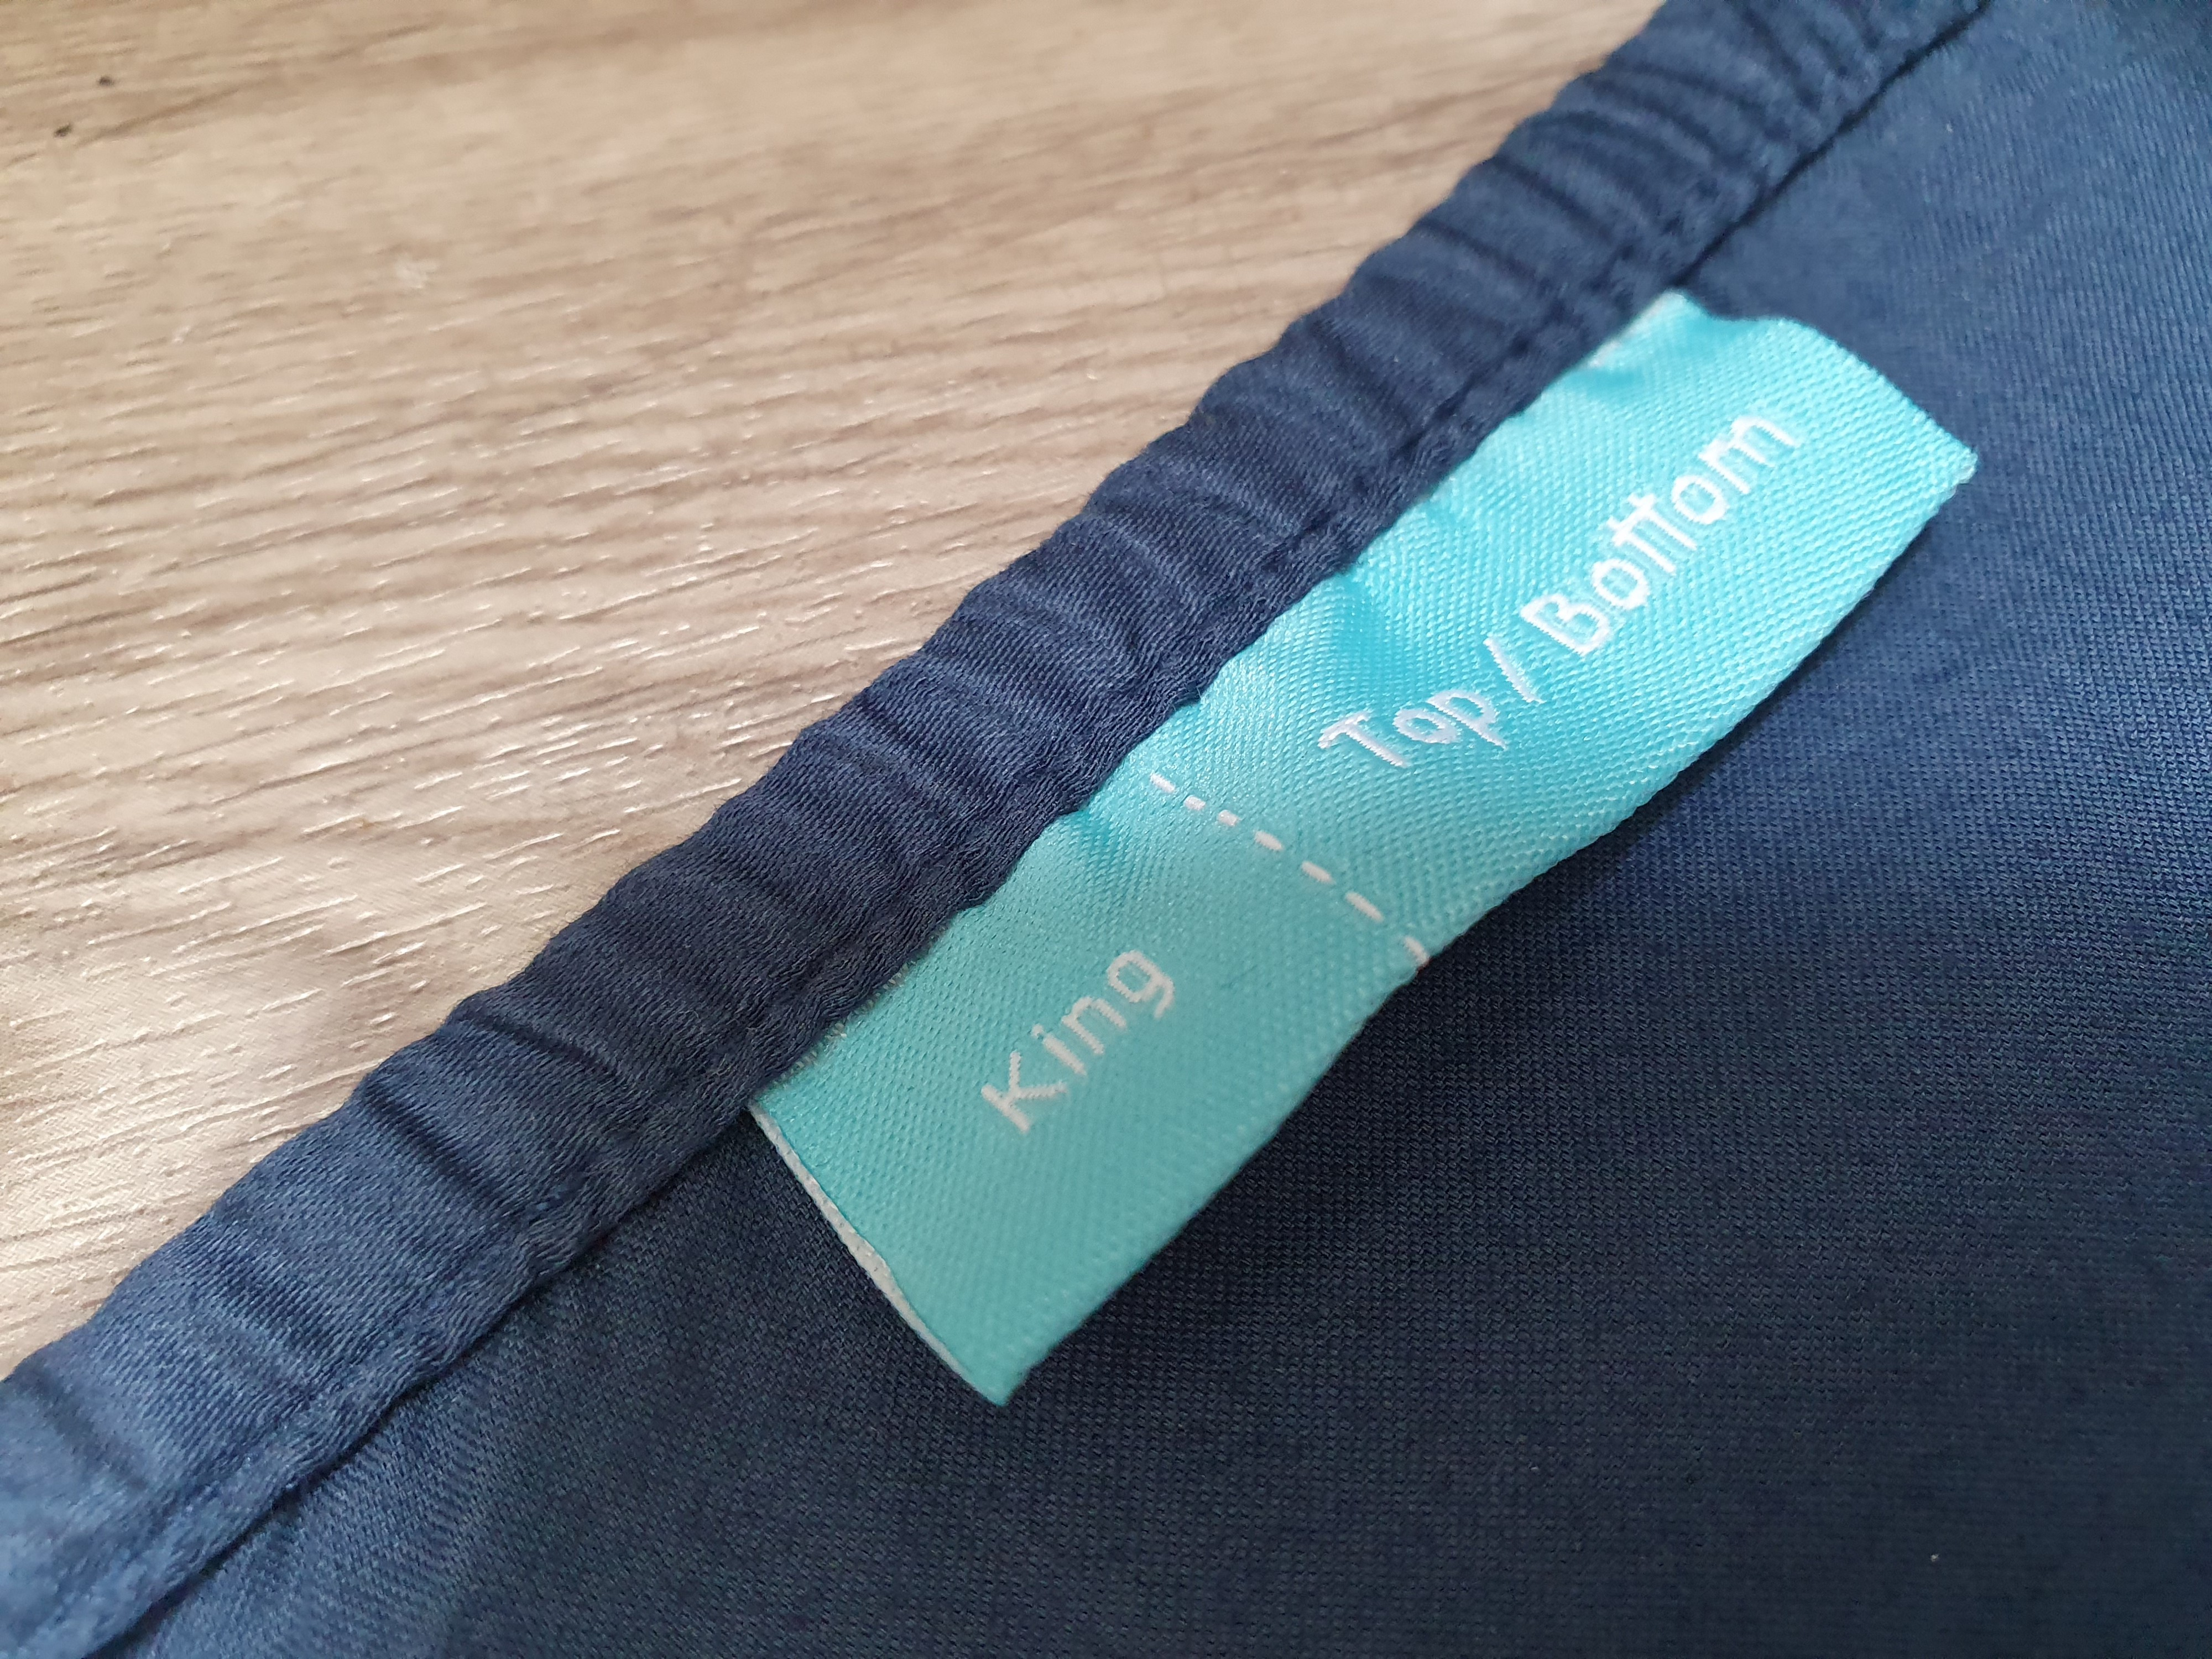 Intelligent tags to know the size and direction to put on your Kapas bed sheet